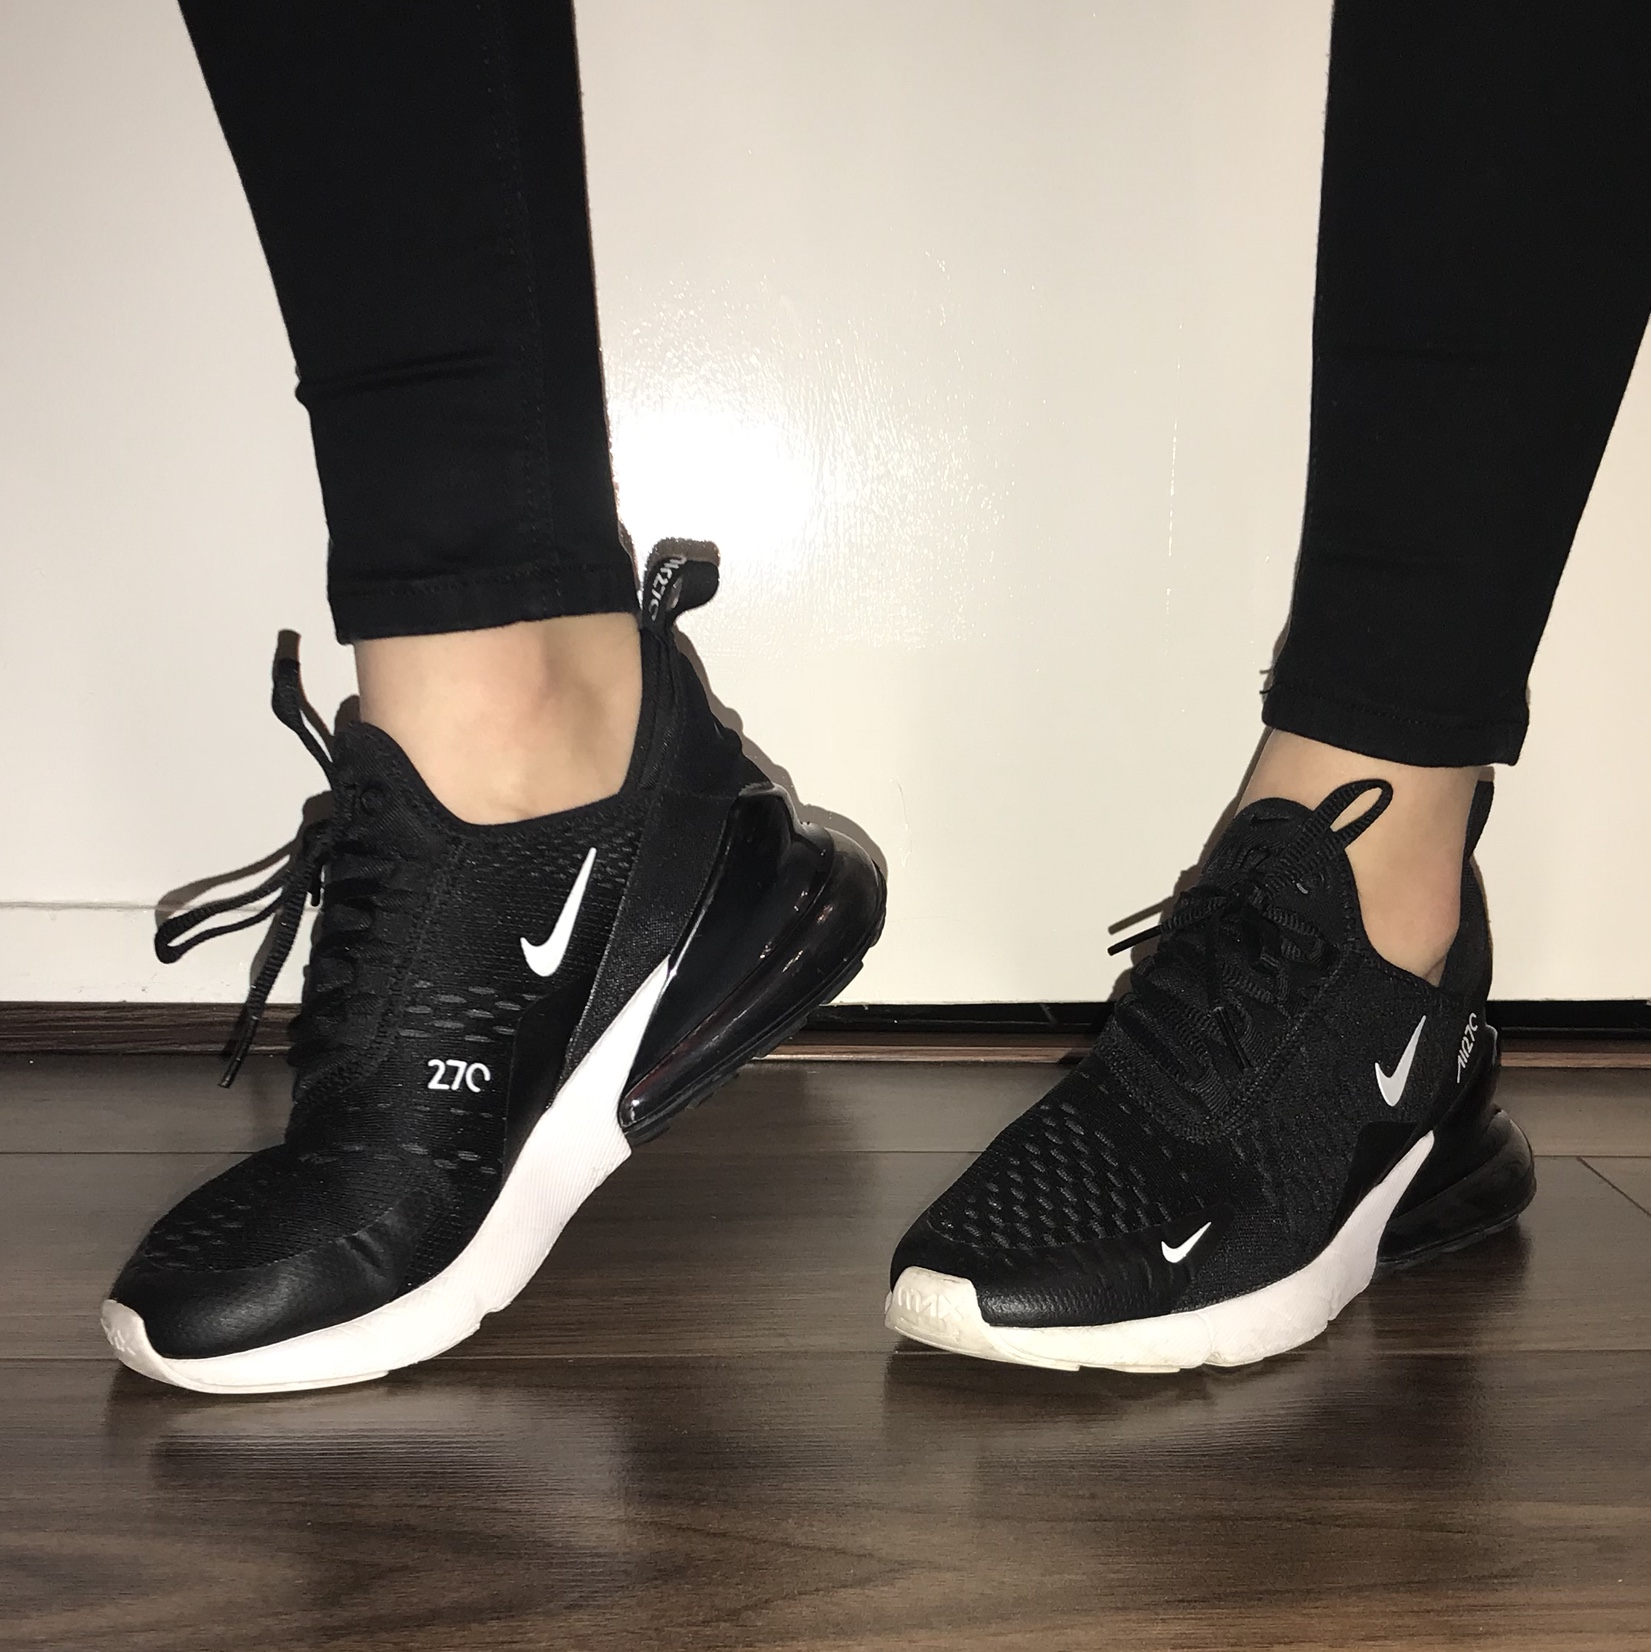 big sale 1eaa2 70eb5 Nike Air Max 270 Junior Black and White. Size UK 5.... - Depop